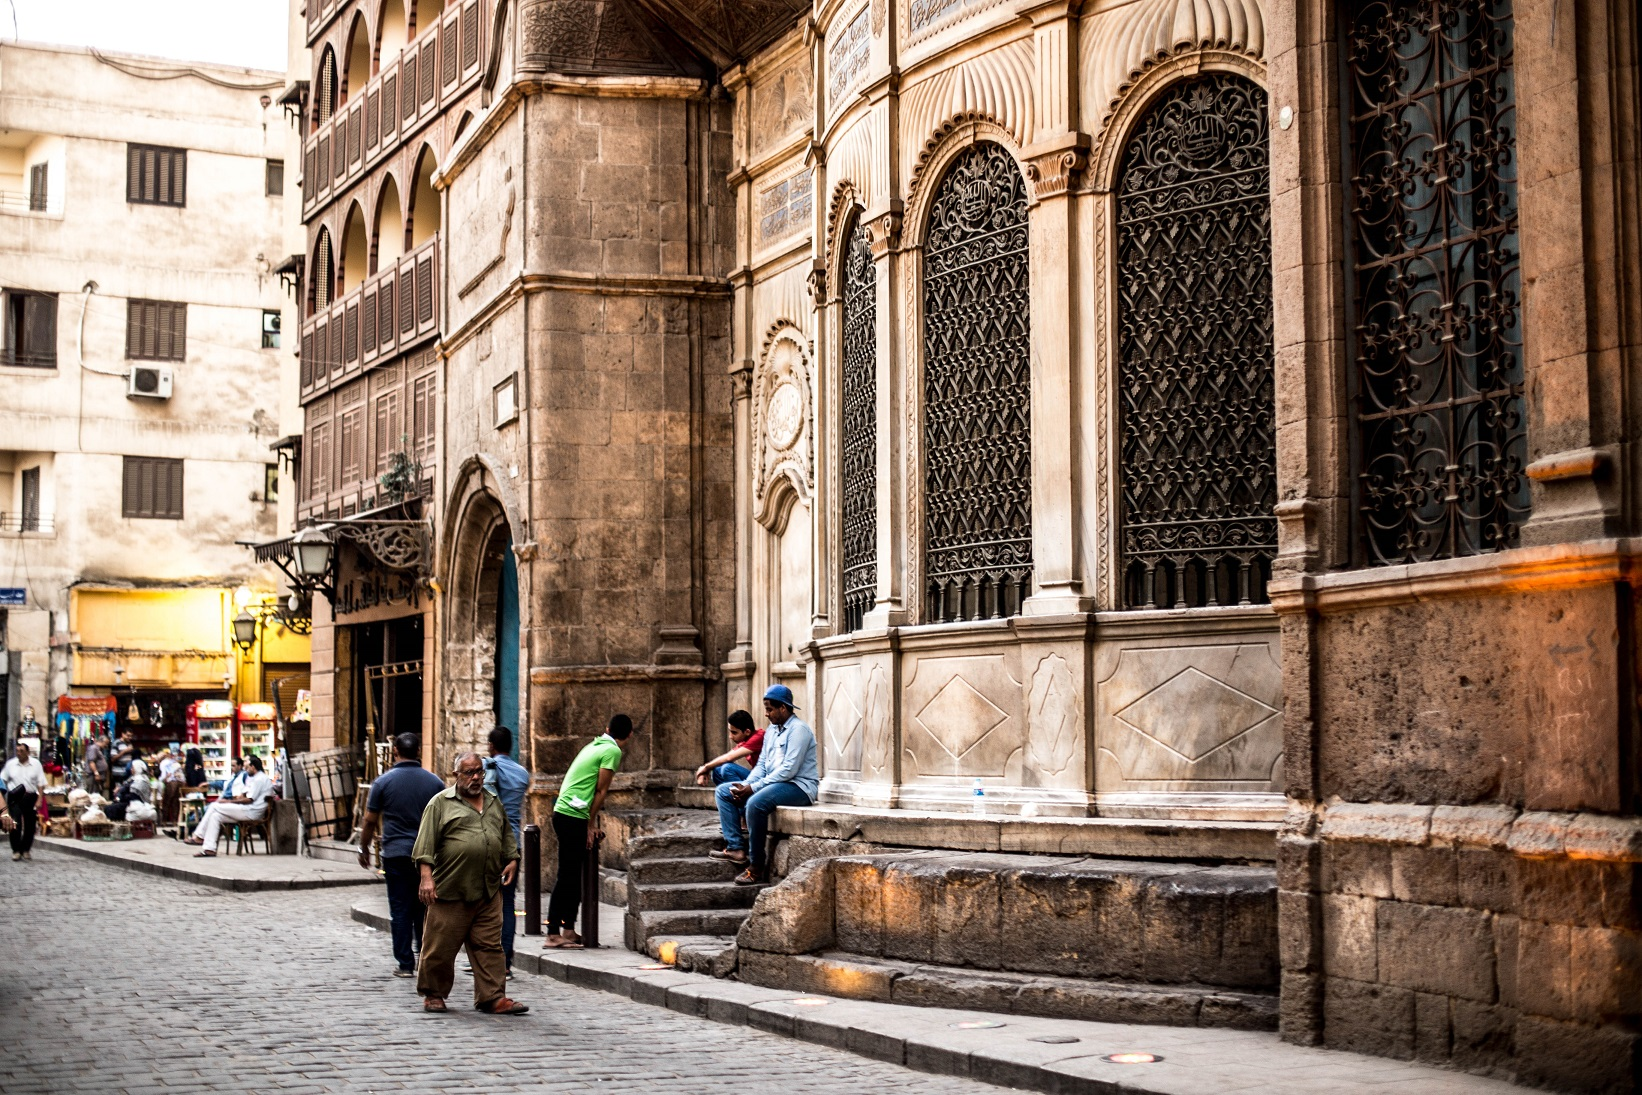 Moez Street has been considered the backbone of Cairo since the city was first build, and one of the most significant touristic markets in Egypt, where tourists can find Egyptianhandicrafts, jewellery and souvenirs. (DNE Photo)